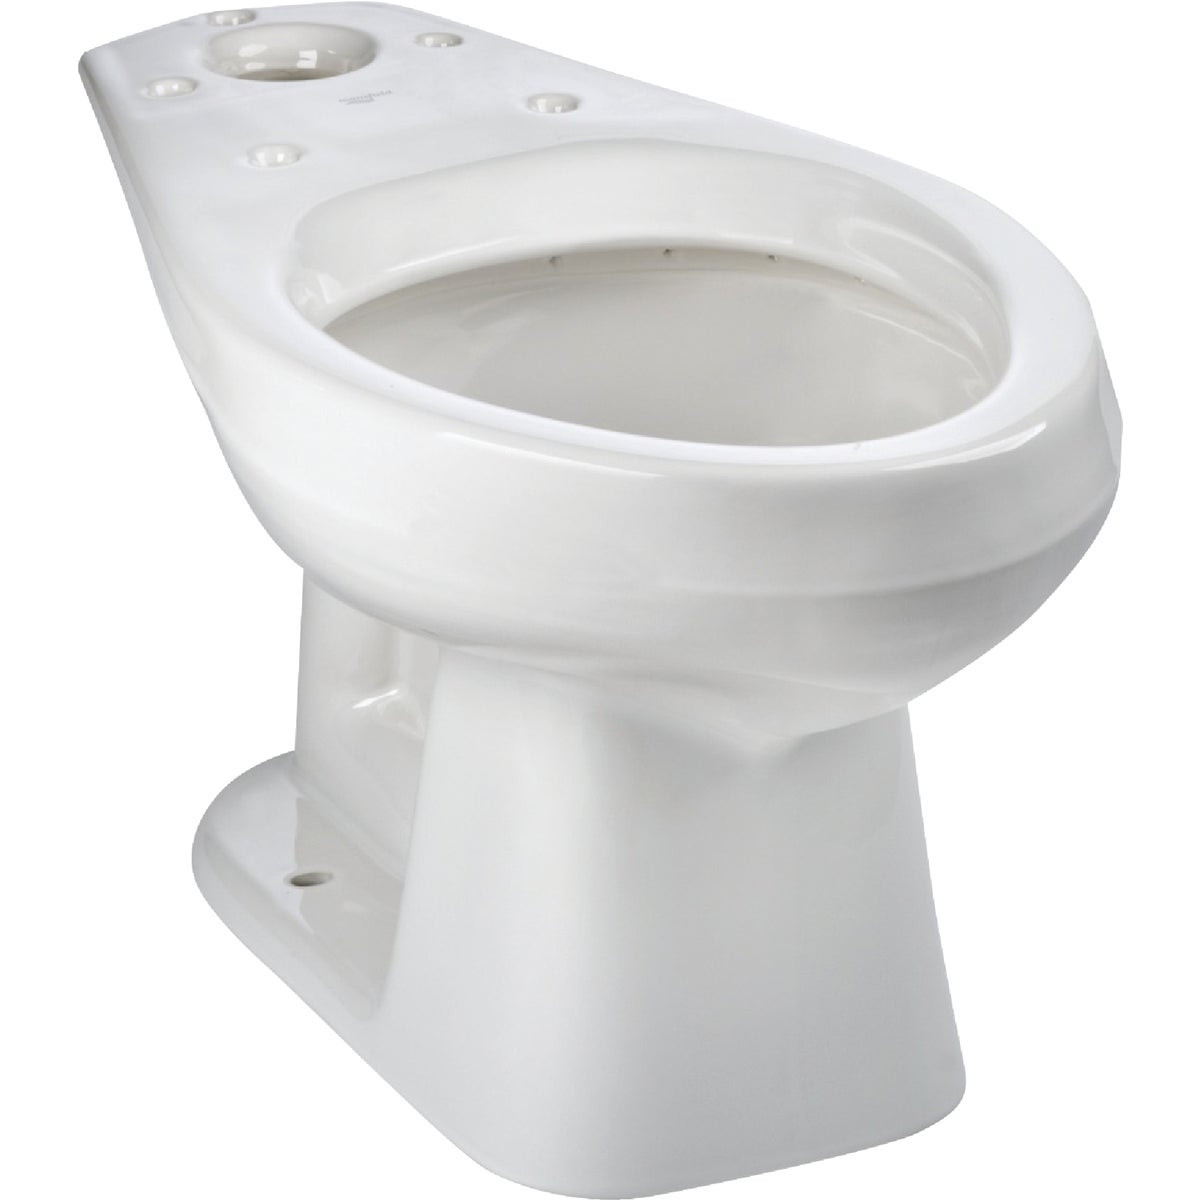 WHITE ELONG TOILET BOWL